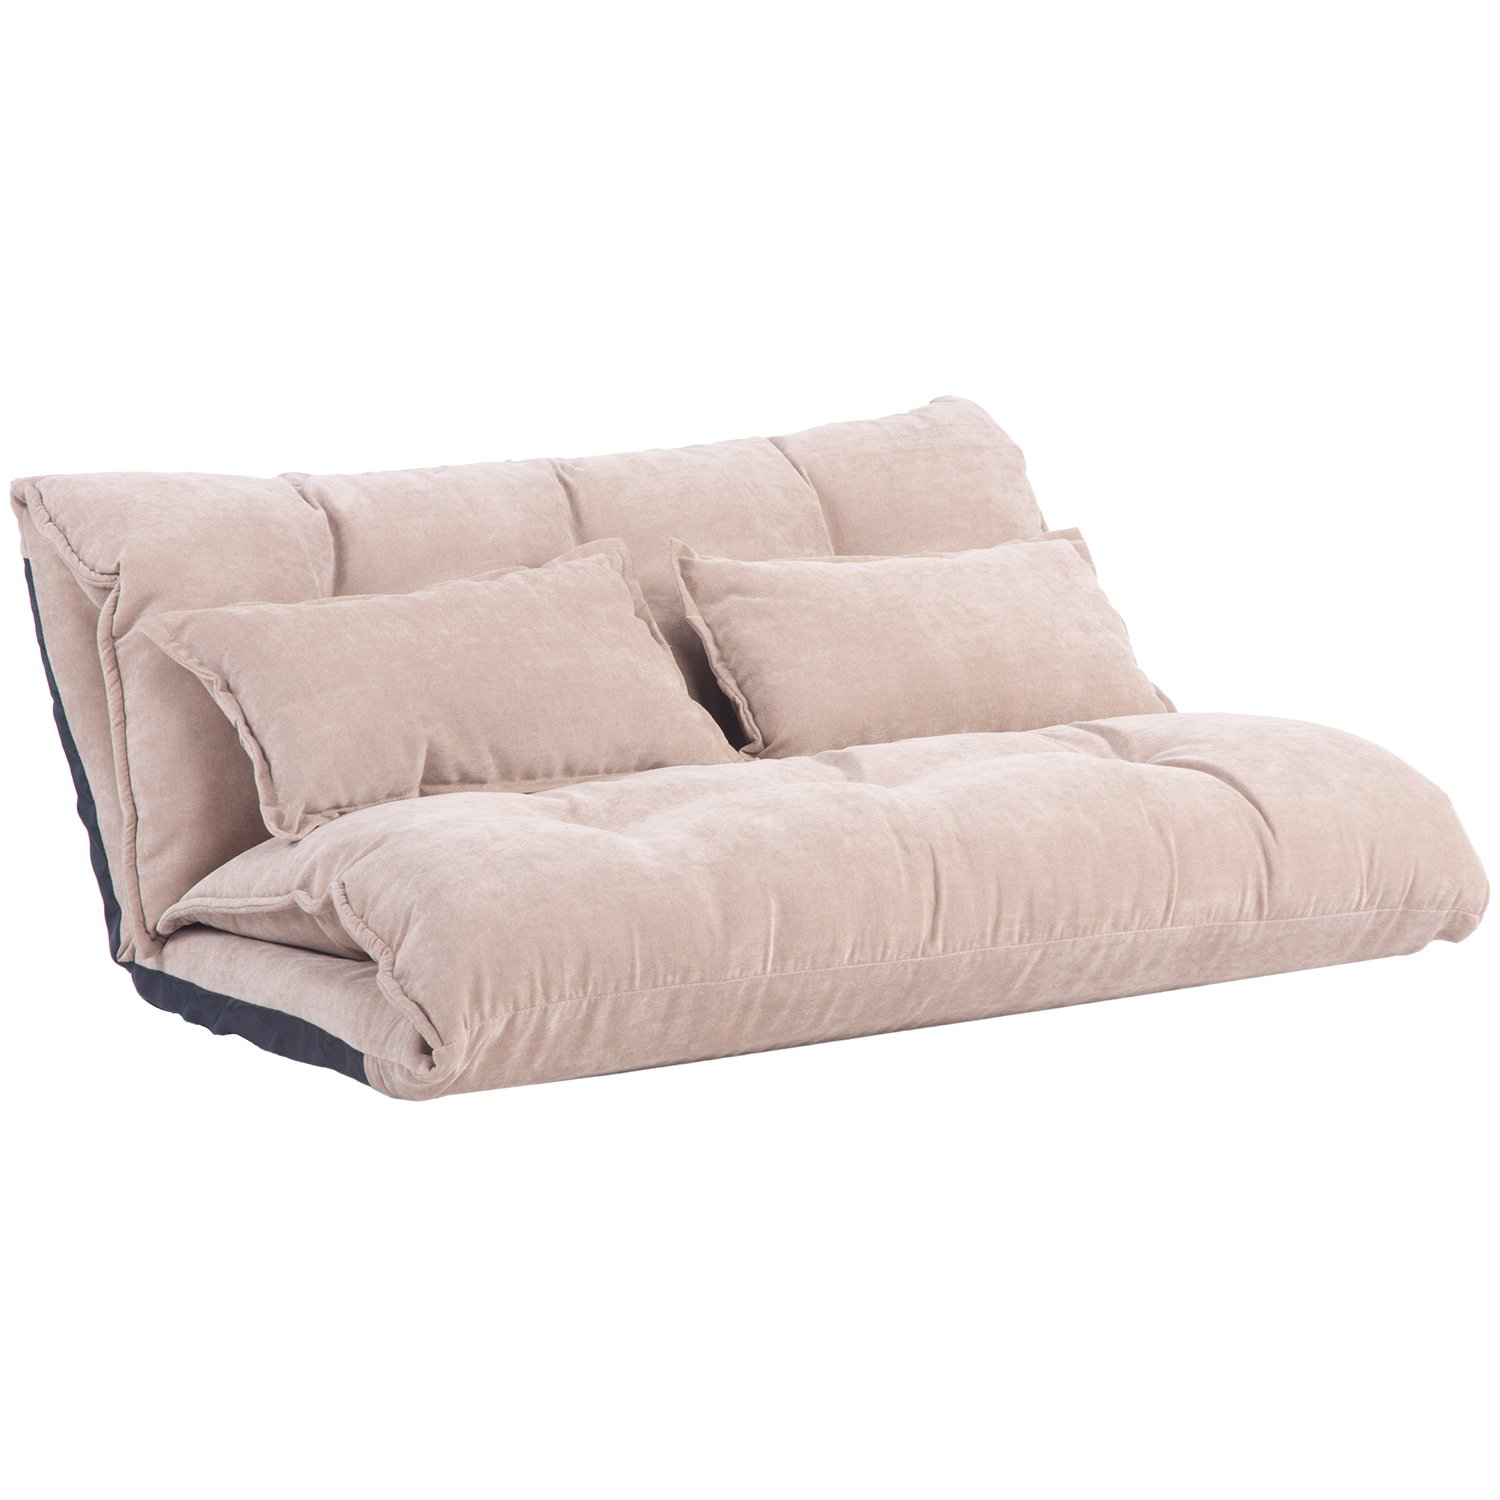 Lounge sofa  Amazon.com: Merax adjustable Floor Sofa Bed Lounge Sofa Bed Floor ...